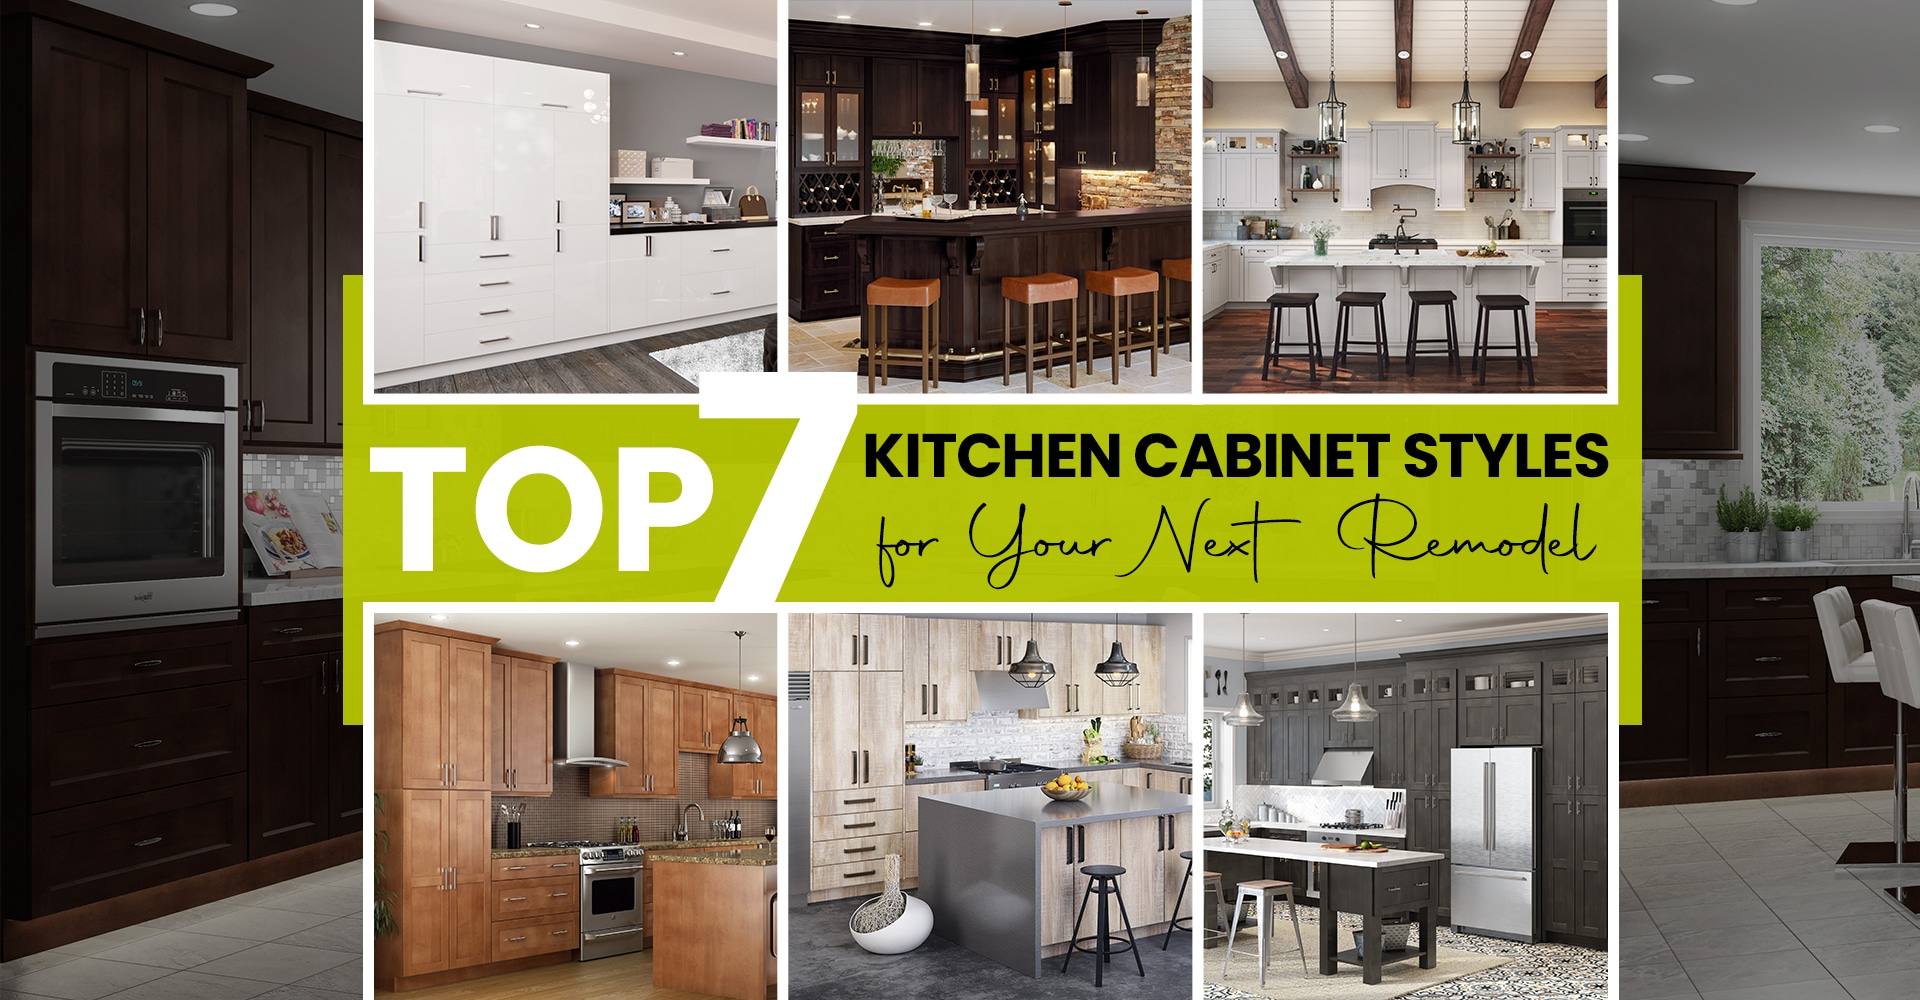 Top 7 Kitchen Cabinet Styles for Your Next Remodel